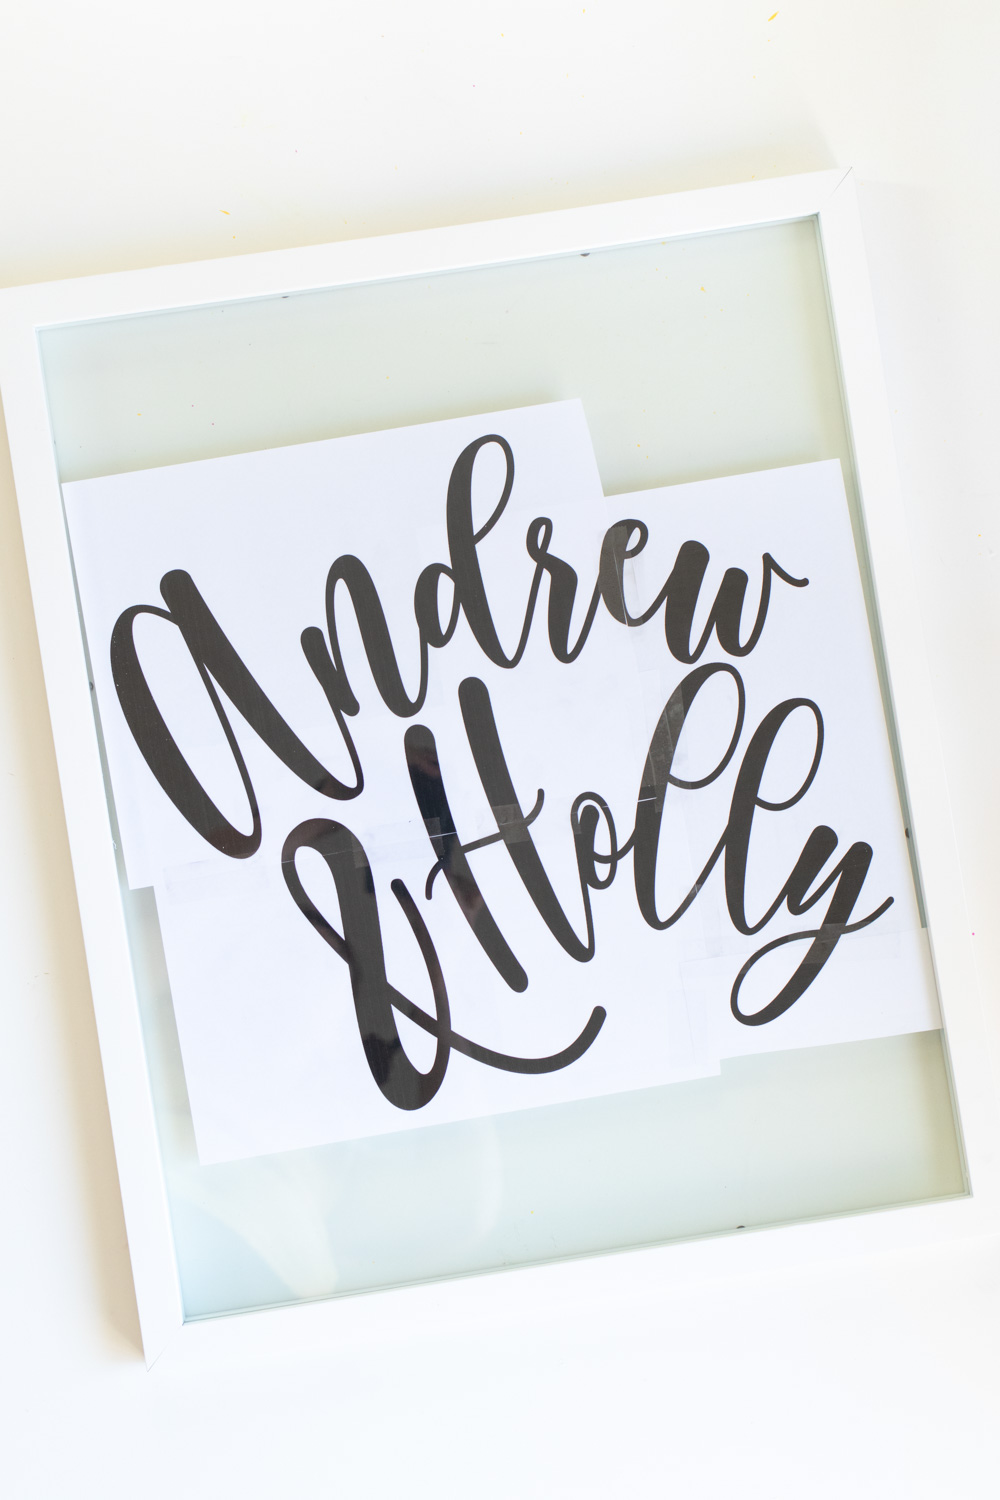 Easy DIY Calligraphy Wedding Sign // Use a large photo frame to make your own custom wedding signage with Rust-Oleum spray paints! Trace your names or sayings, then let it pop off the glass with the new Imagine collection of glitter spray paint available at @joann! #ad #handmadewithjoann #weddingdiy #diywedding #weddingsign #spraypainting #calligraphy #diyideas #homedecor